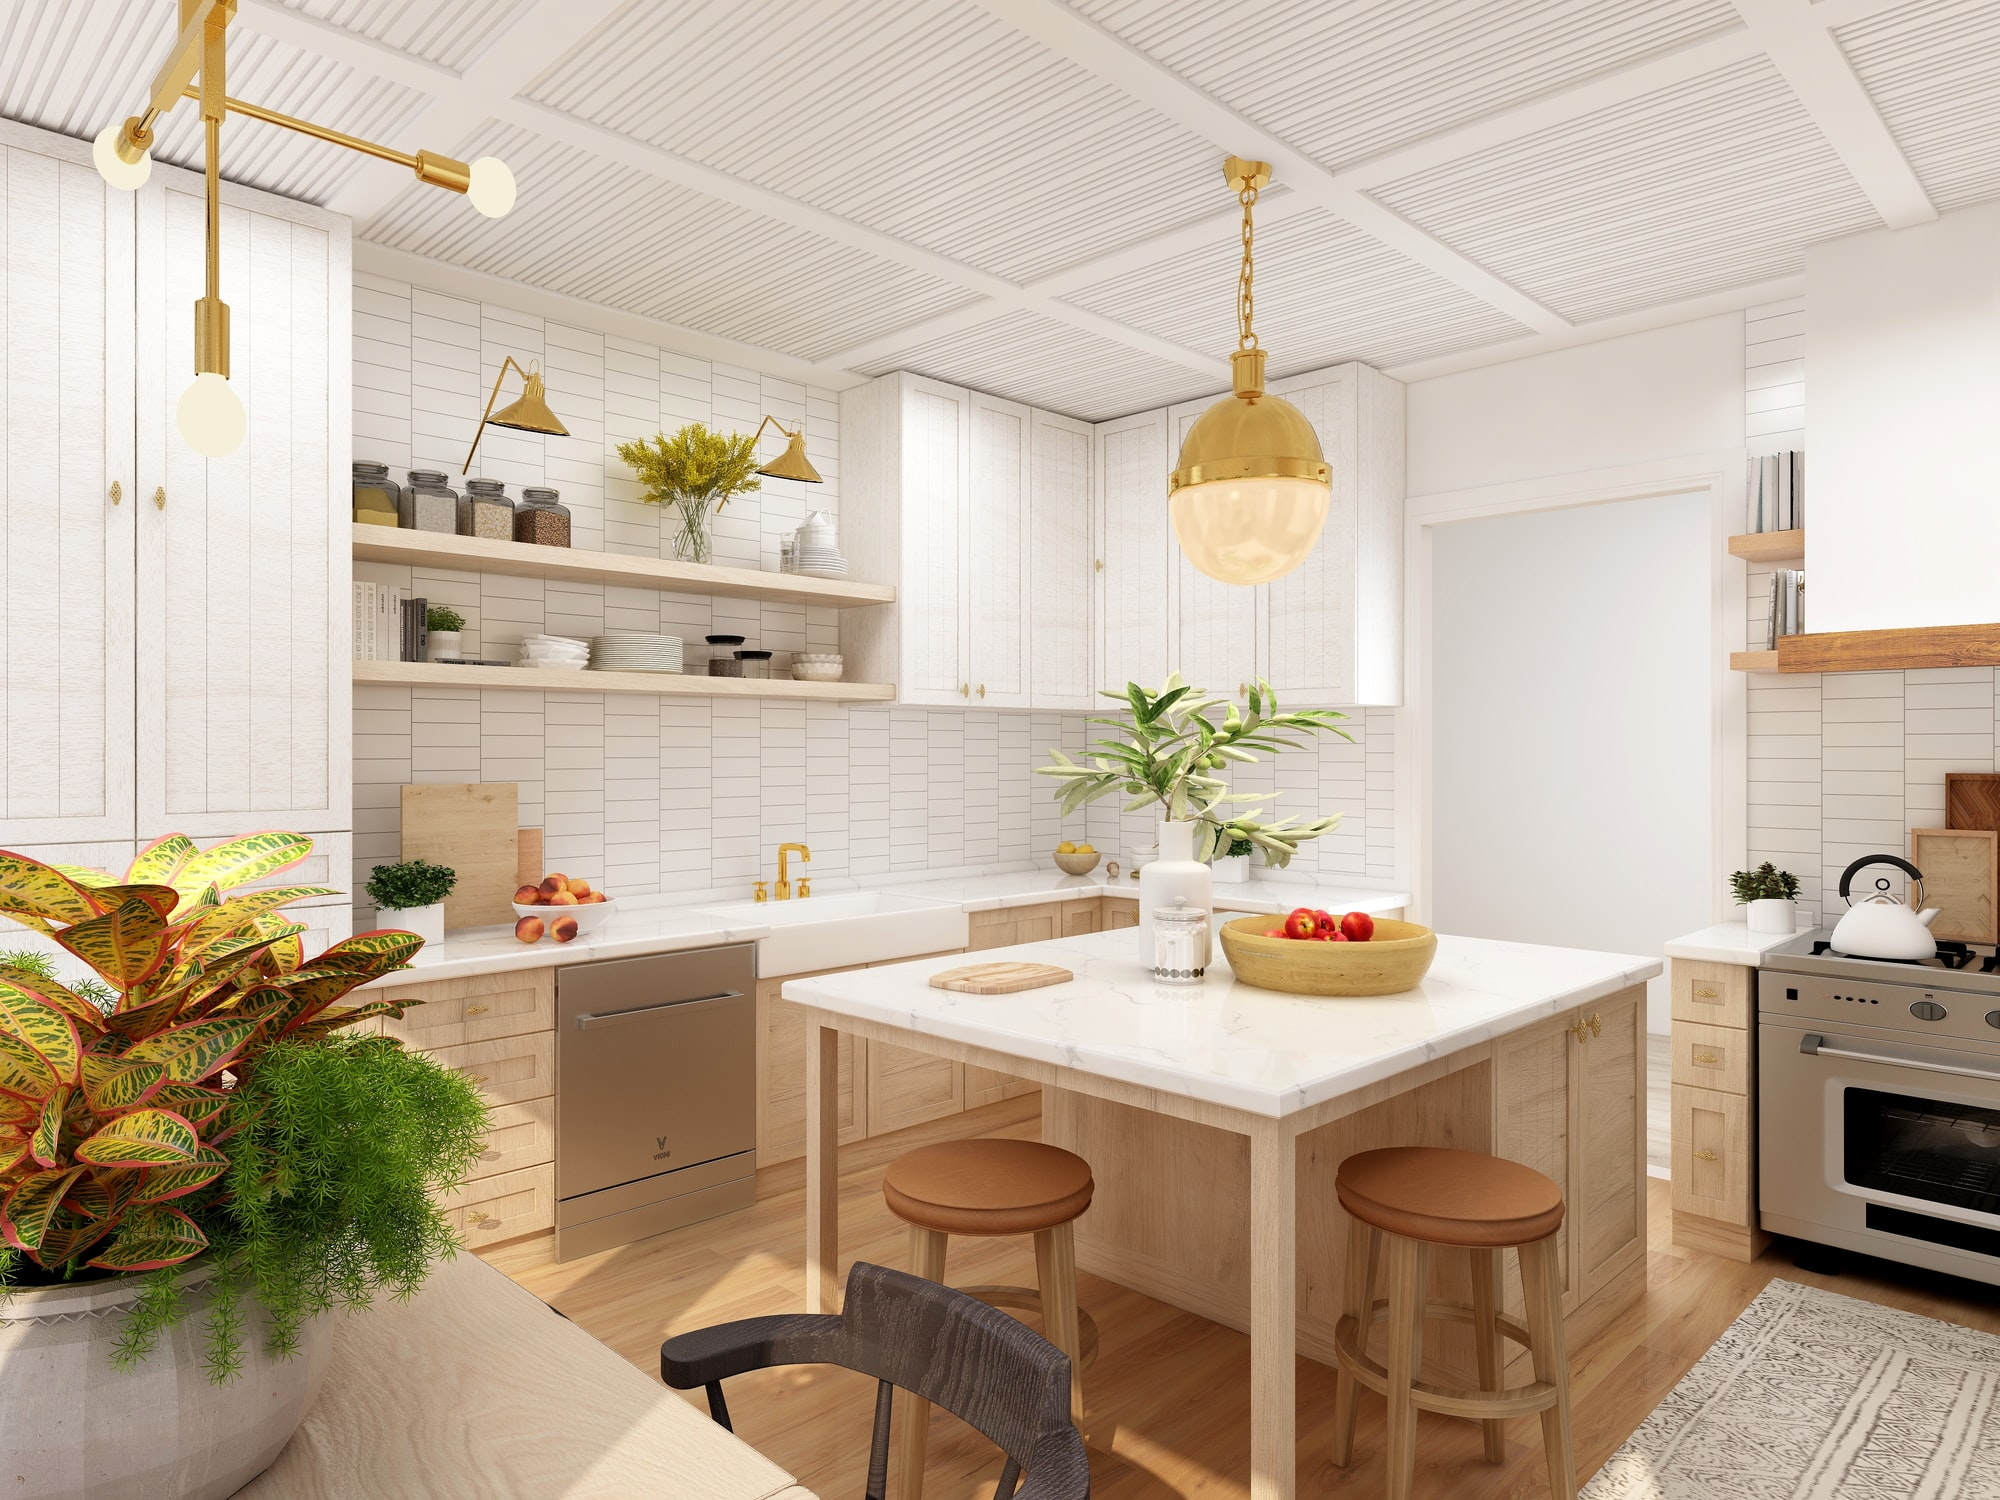 4 amazing decor tips for a stunning kitchen